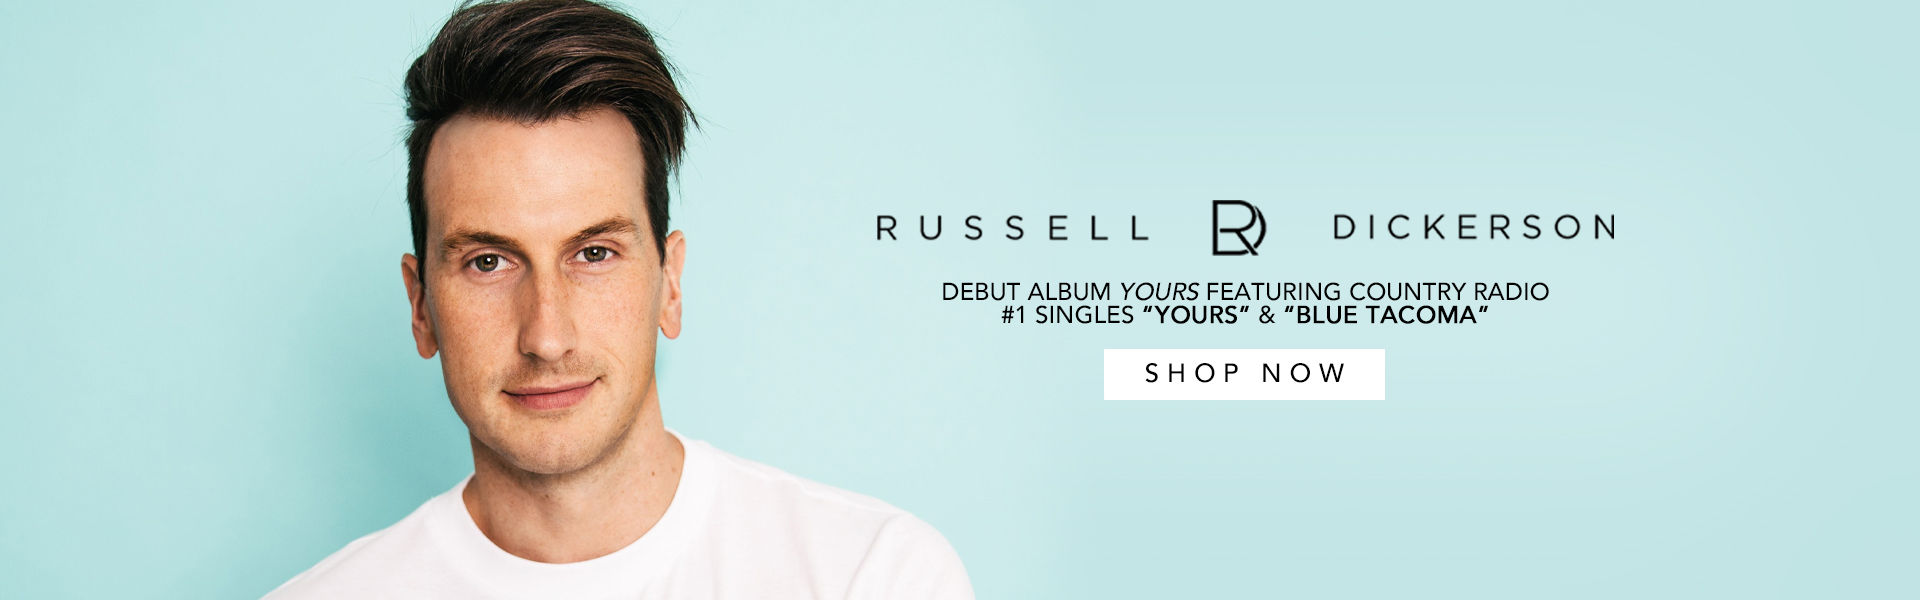 Shop Russell Dickerson Now!